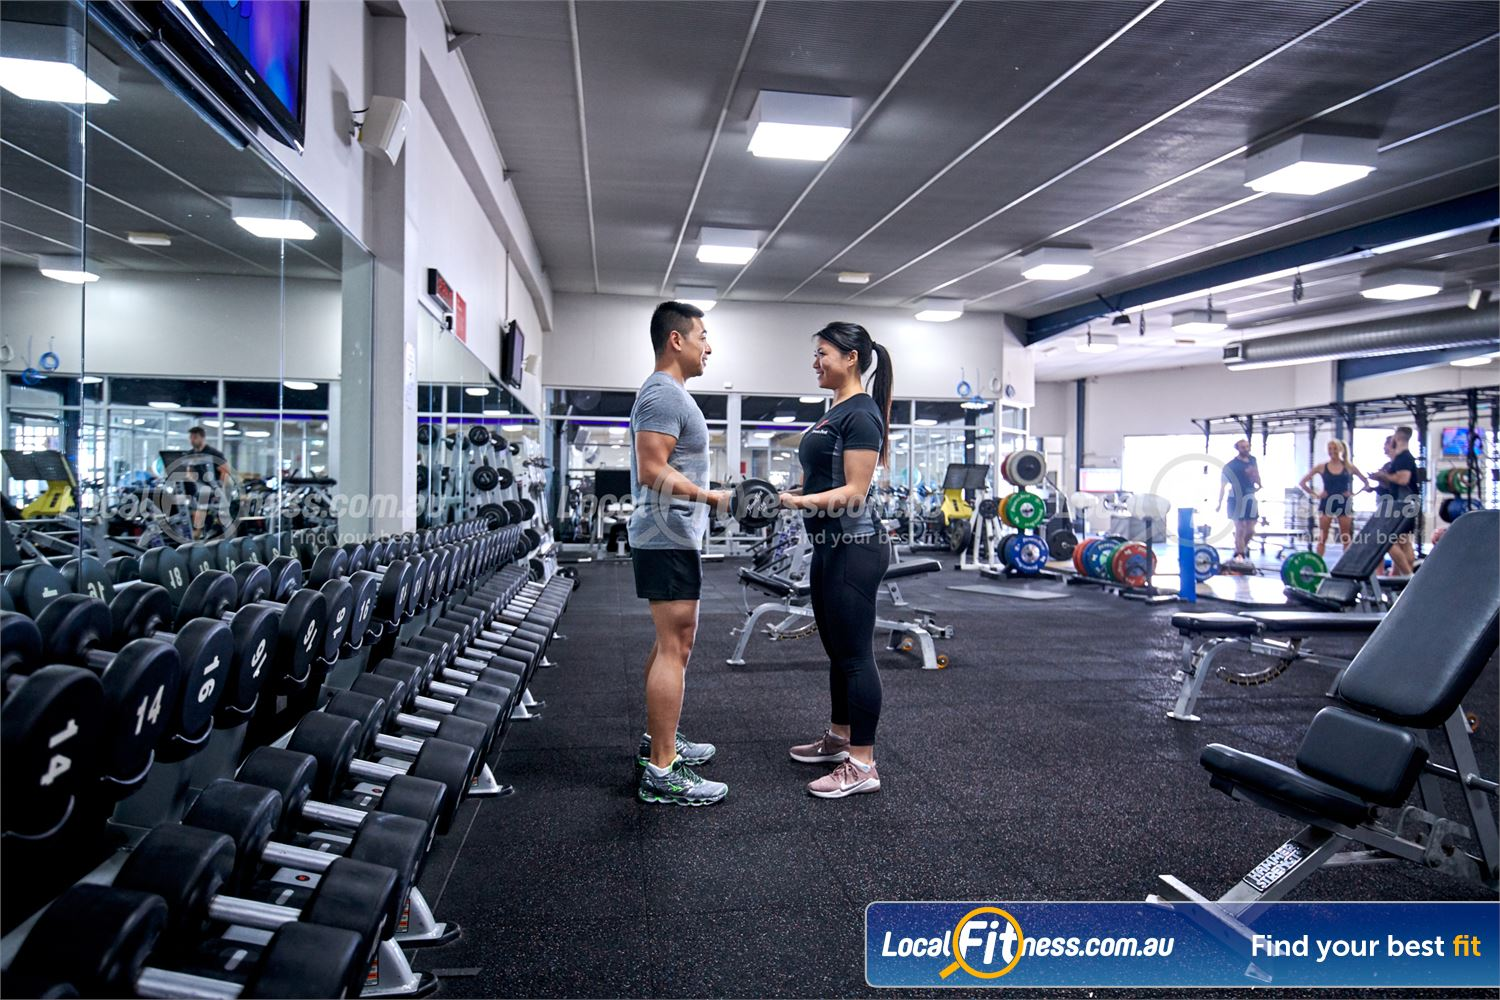 Fitness First Bayside Highett Our Bayside gym provides a fully equipped free-weights area.